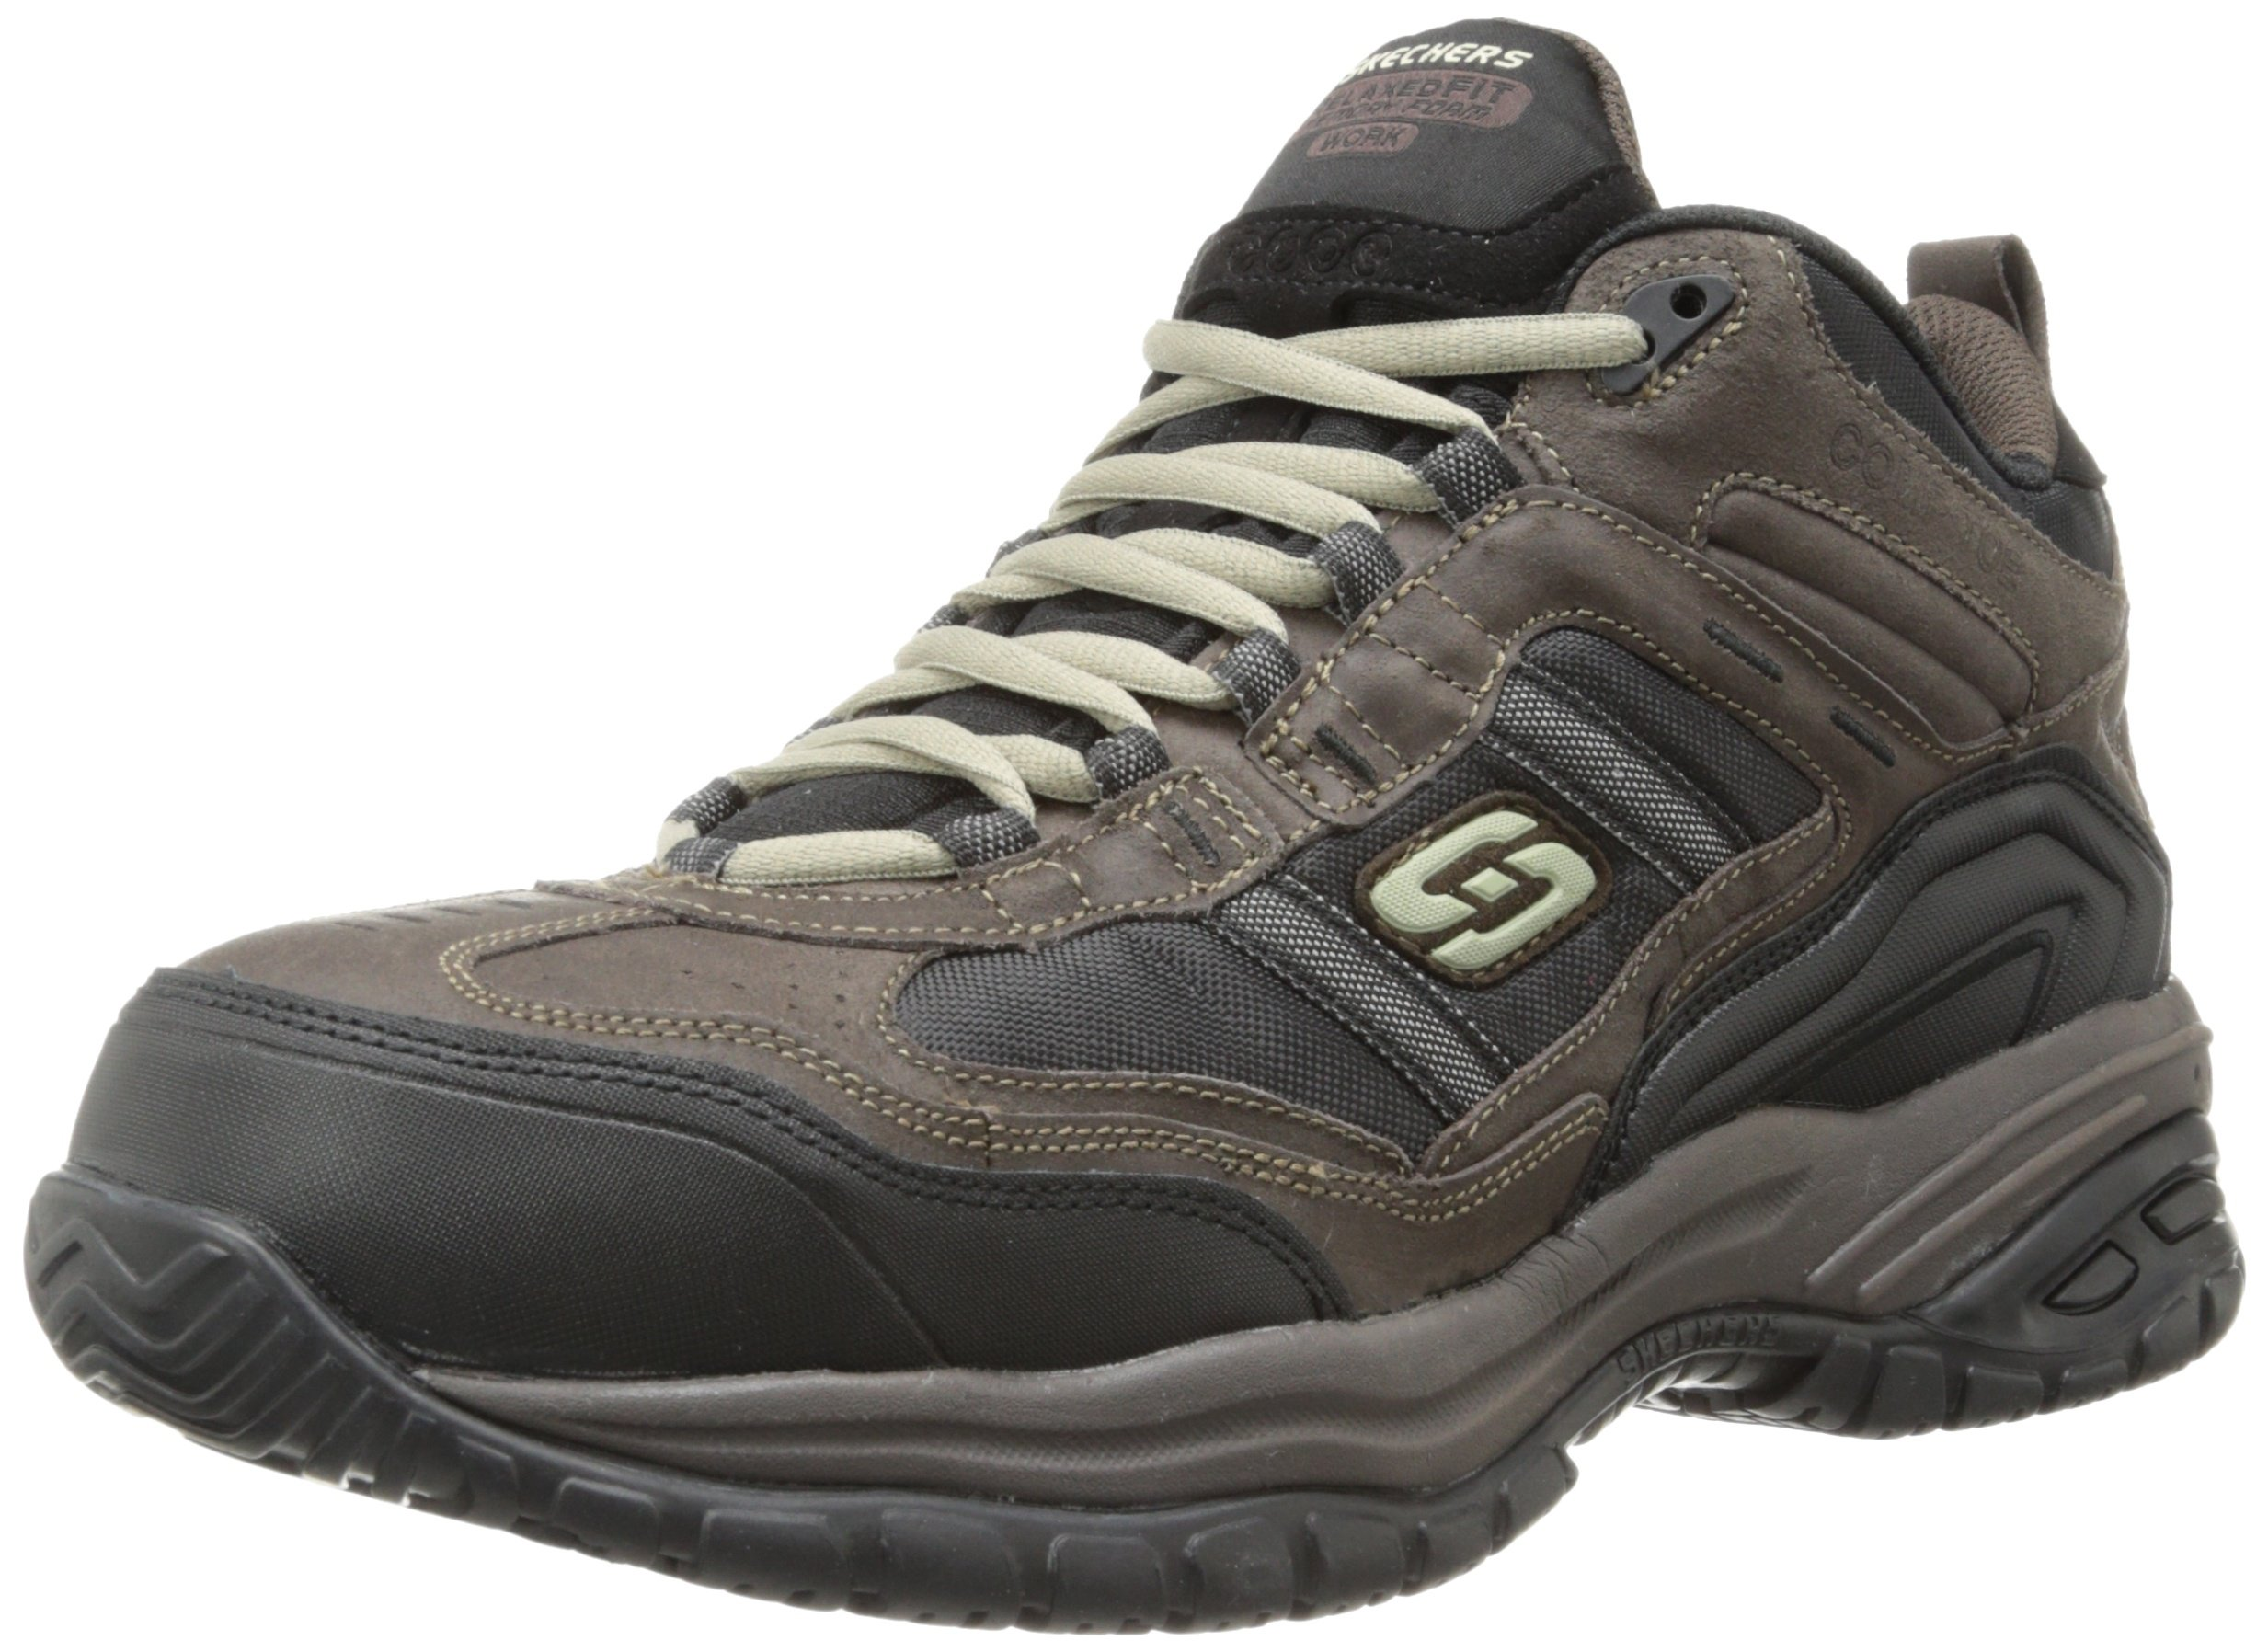 Skechers Men's Work Relaxed Fit Soft Stride Canopy Comp Toe Shoe, Brown/Black - 13 3E US by Skechers